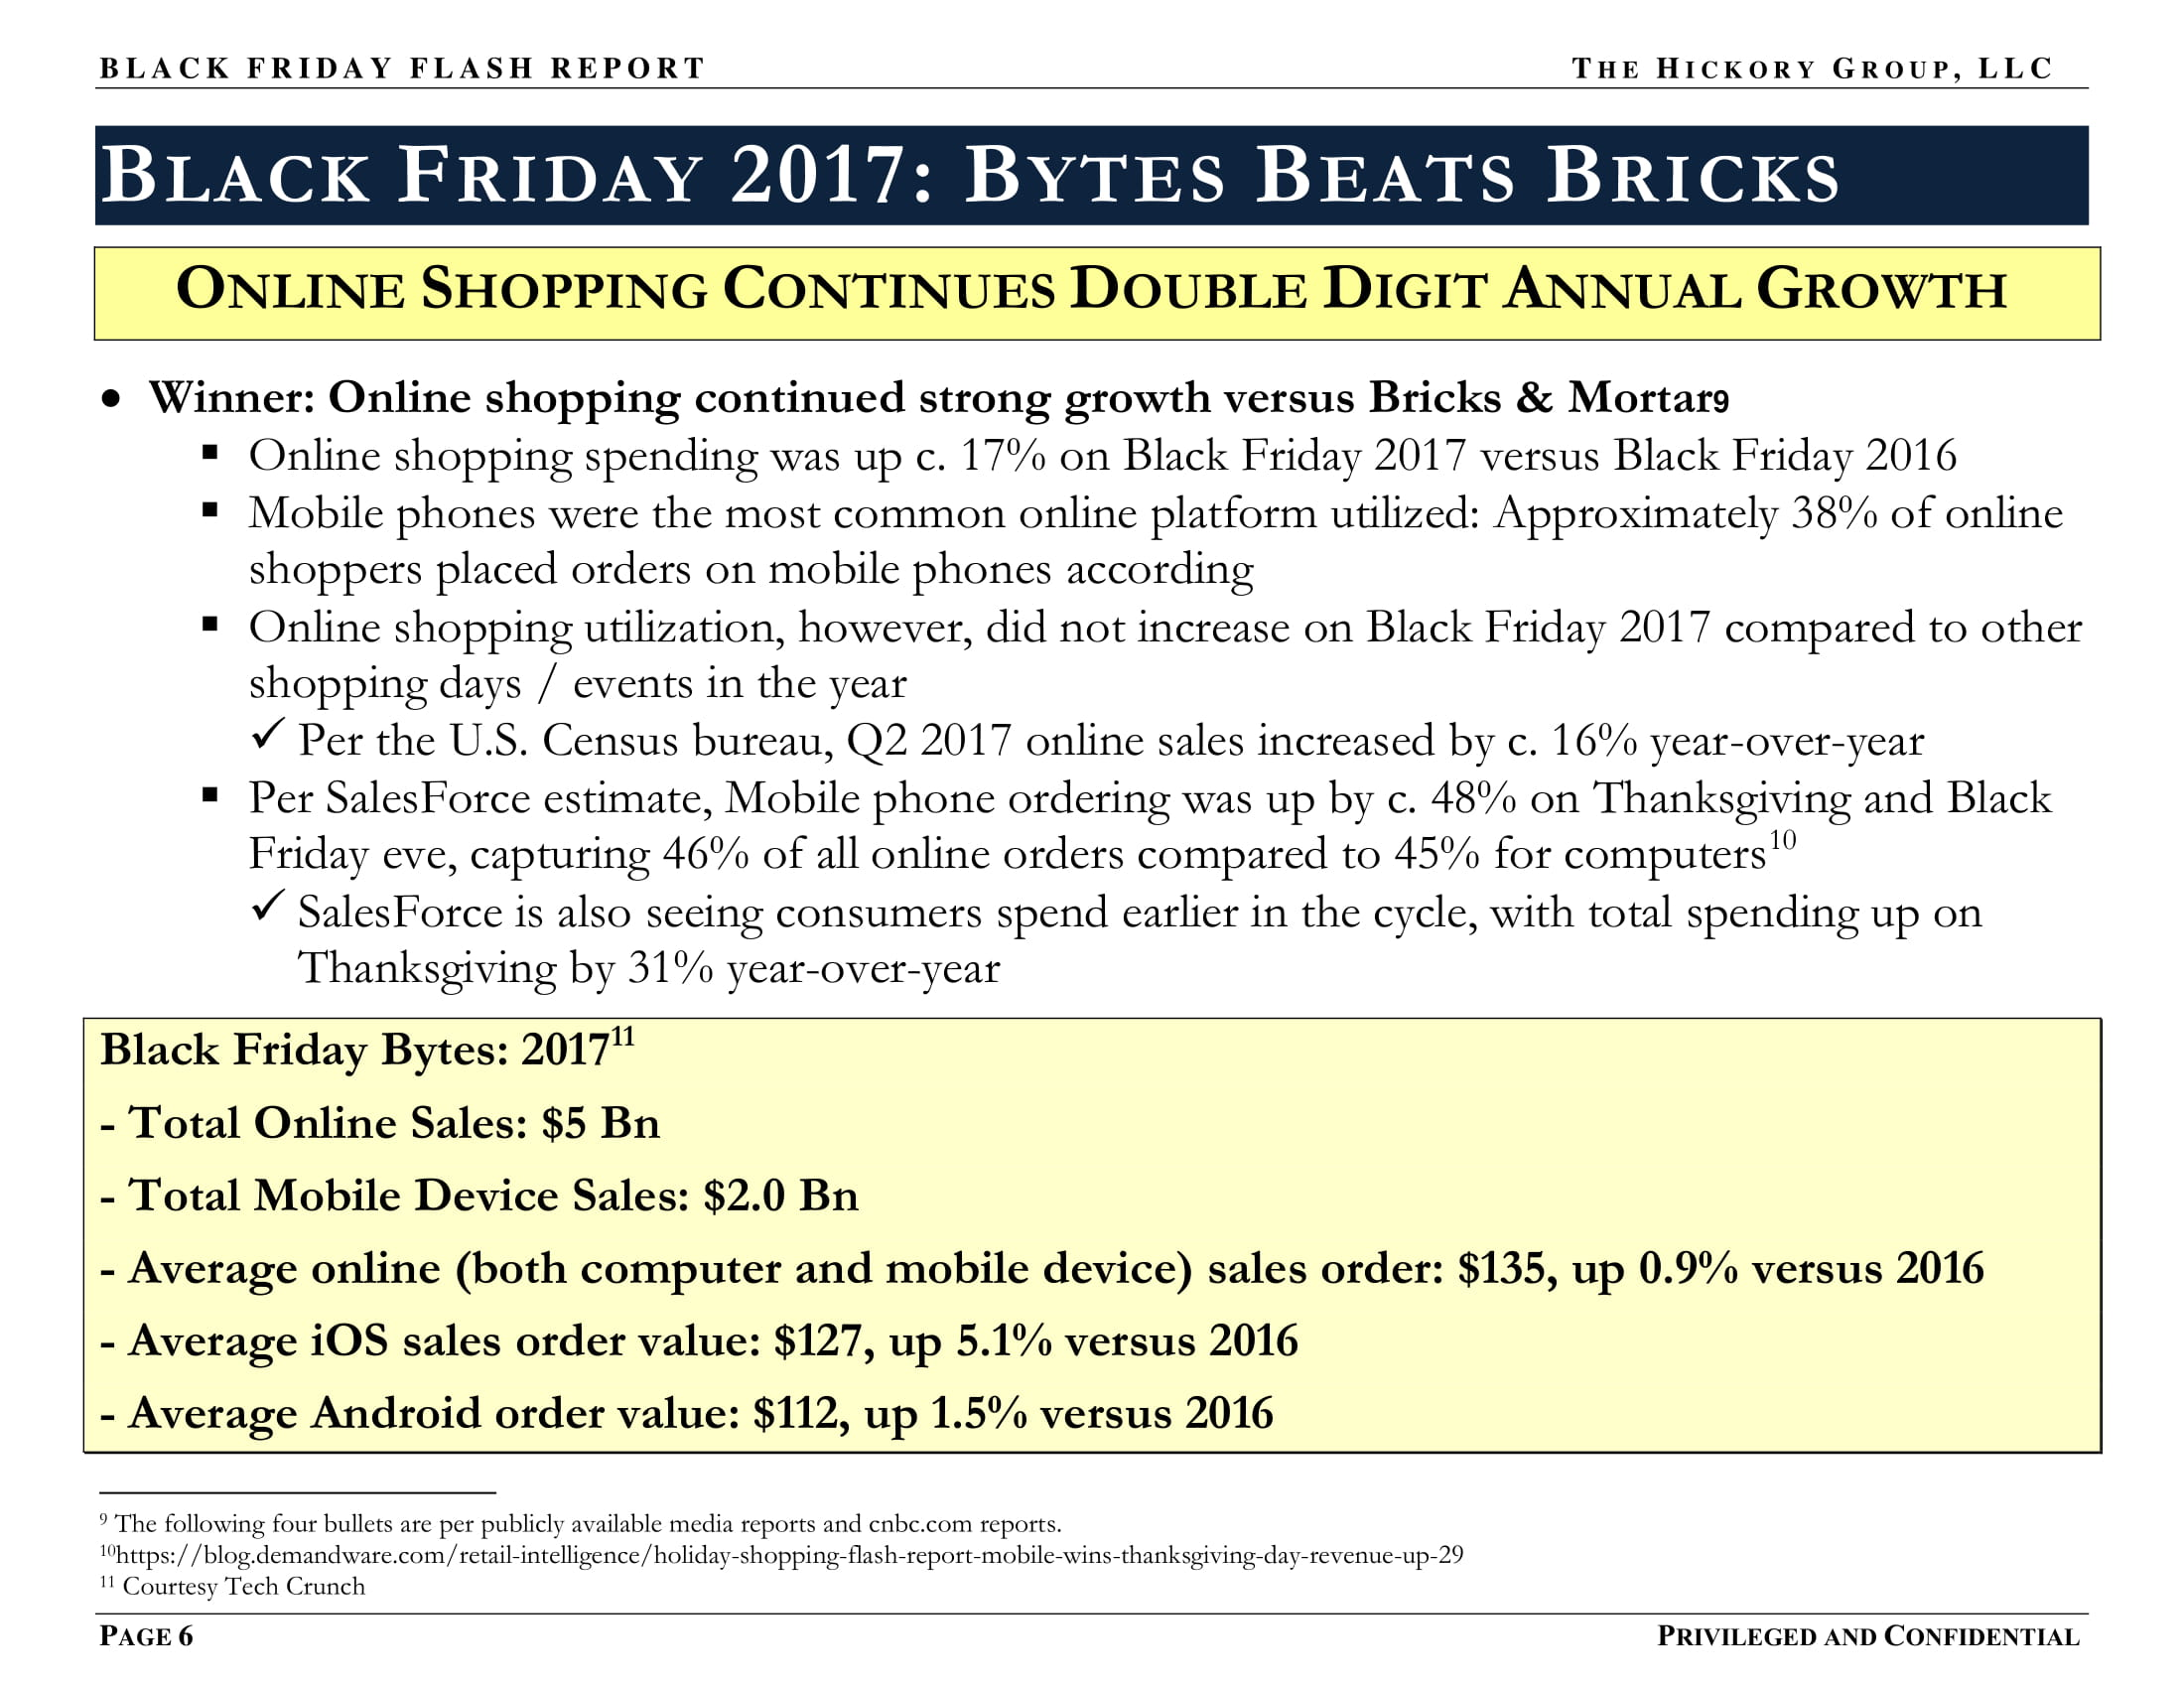 PUBLIC FINAL Flash Summary Black Friday (27 November 2017) Privileged and Confidential-6.jpg